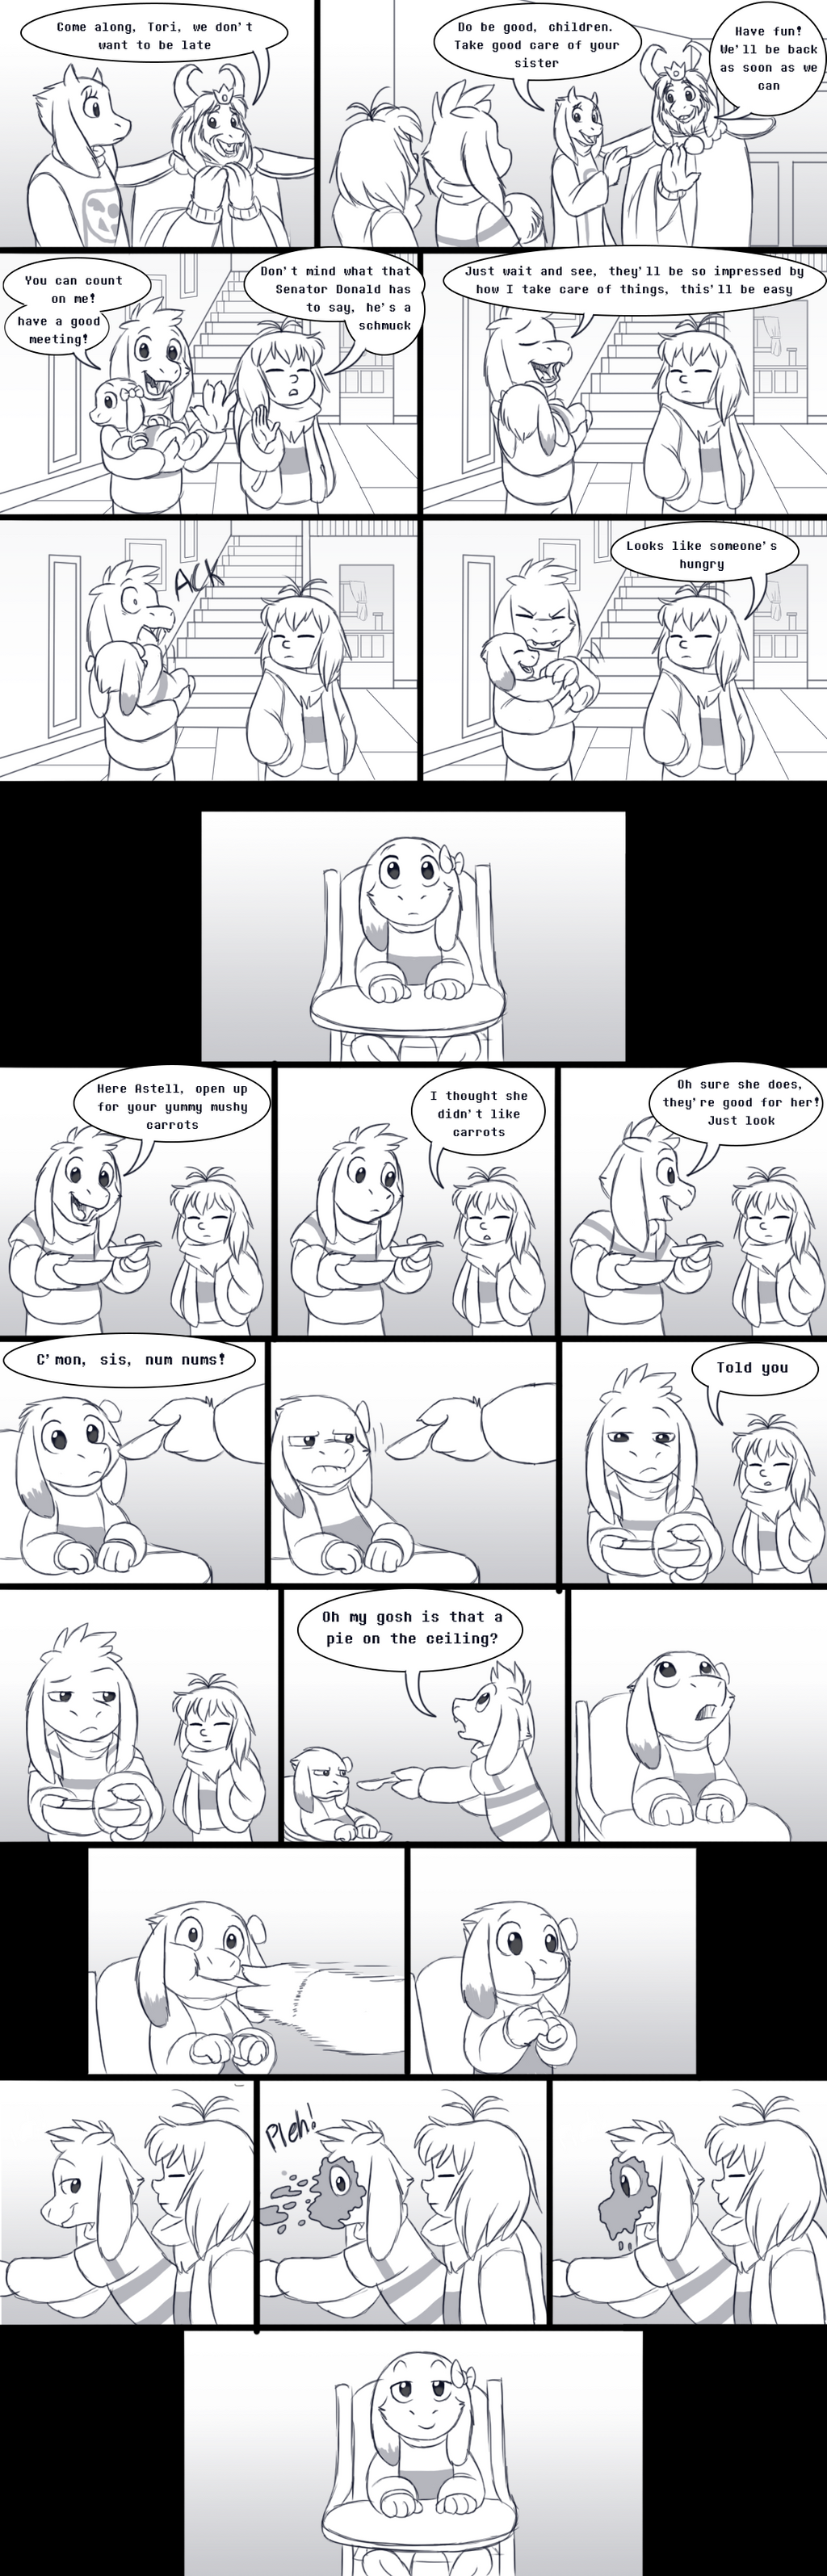 Siblingtale - Babysitting - Page 2 by TC-96